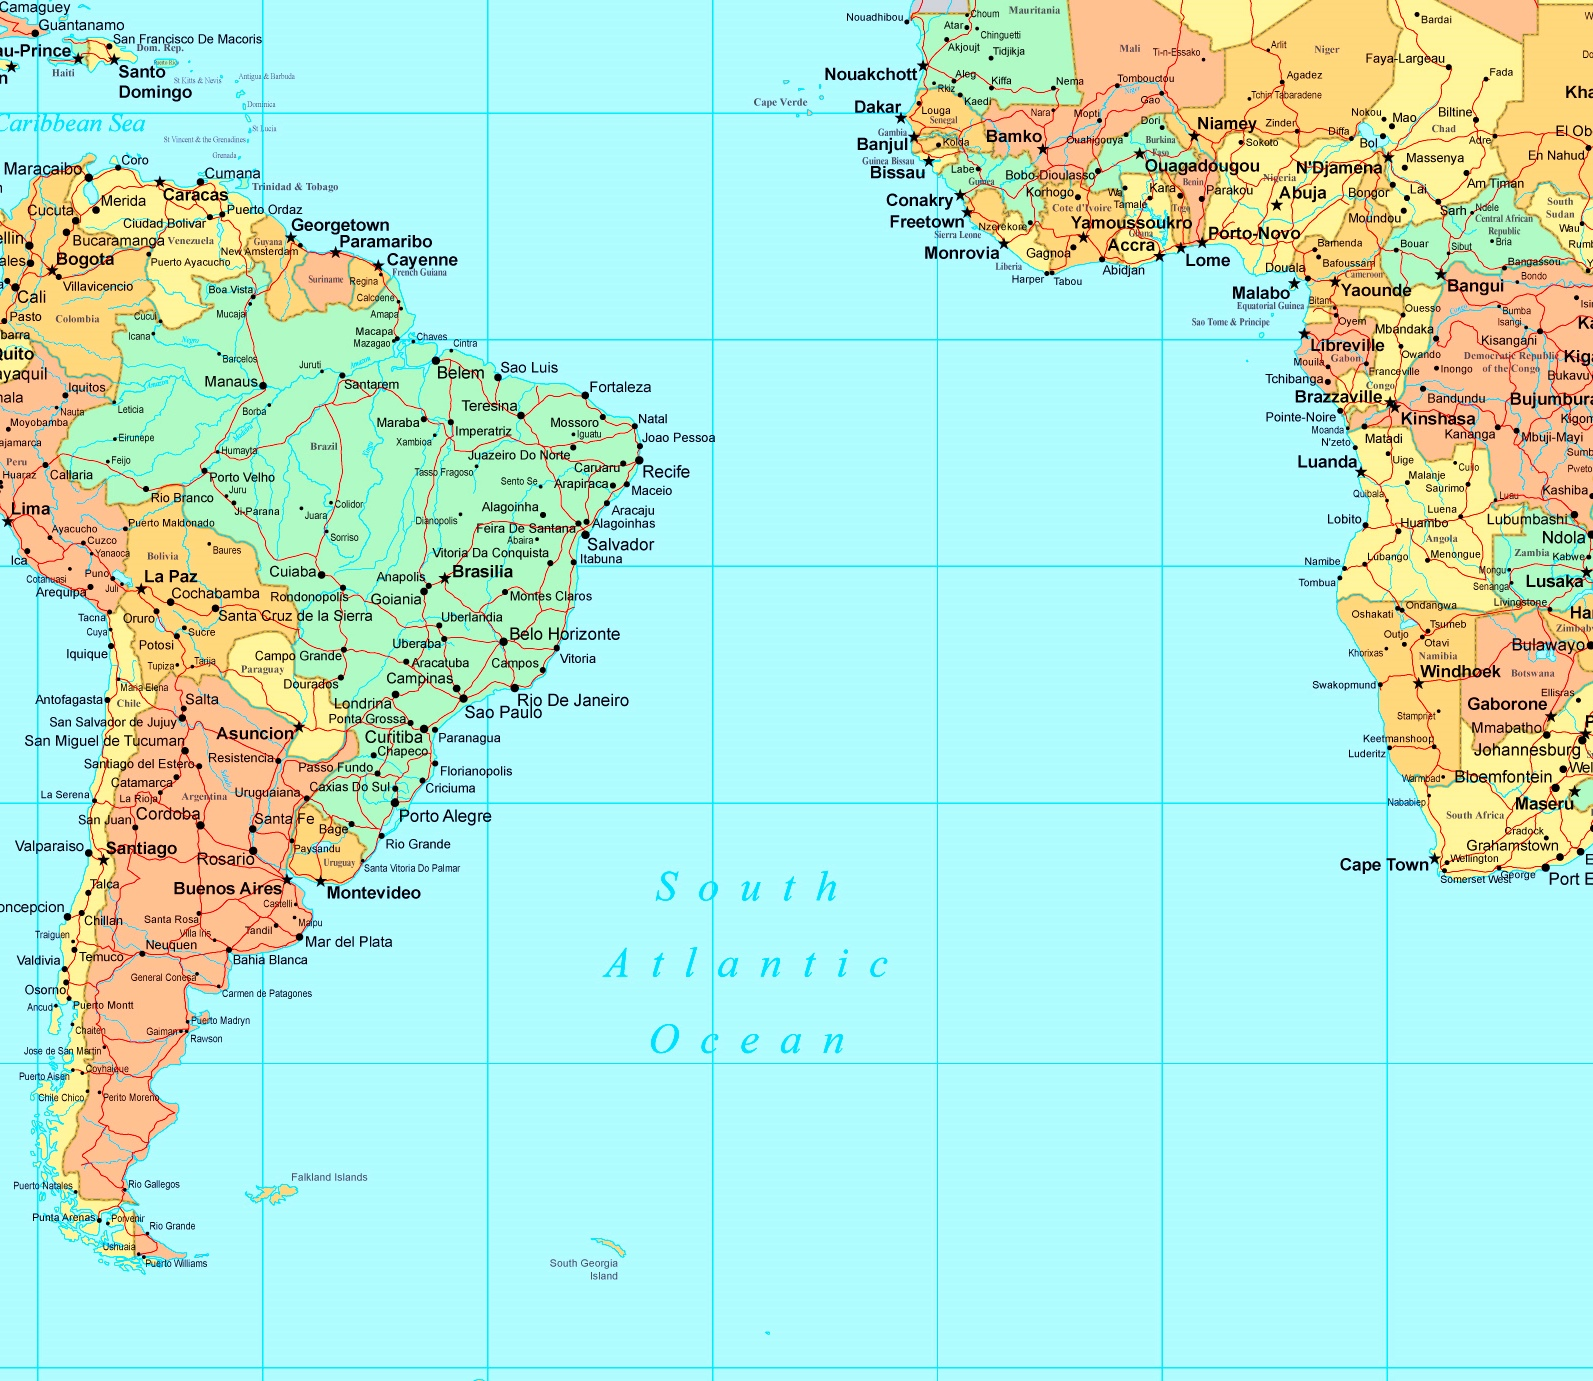 South atlantic ocean map south atlantic ocean map gumiabroncs Image collections